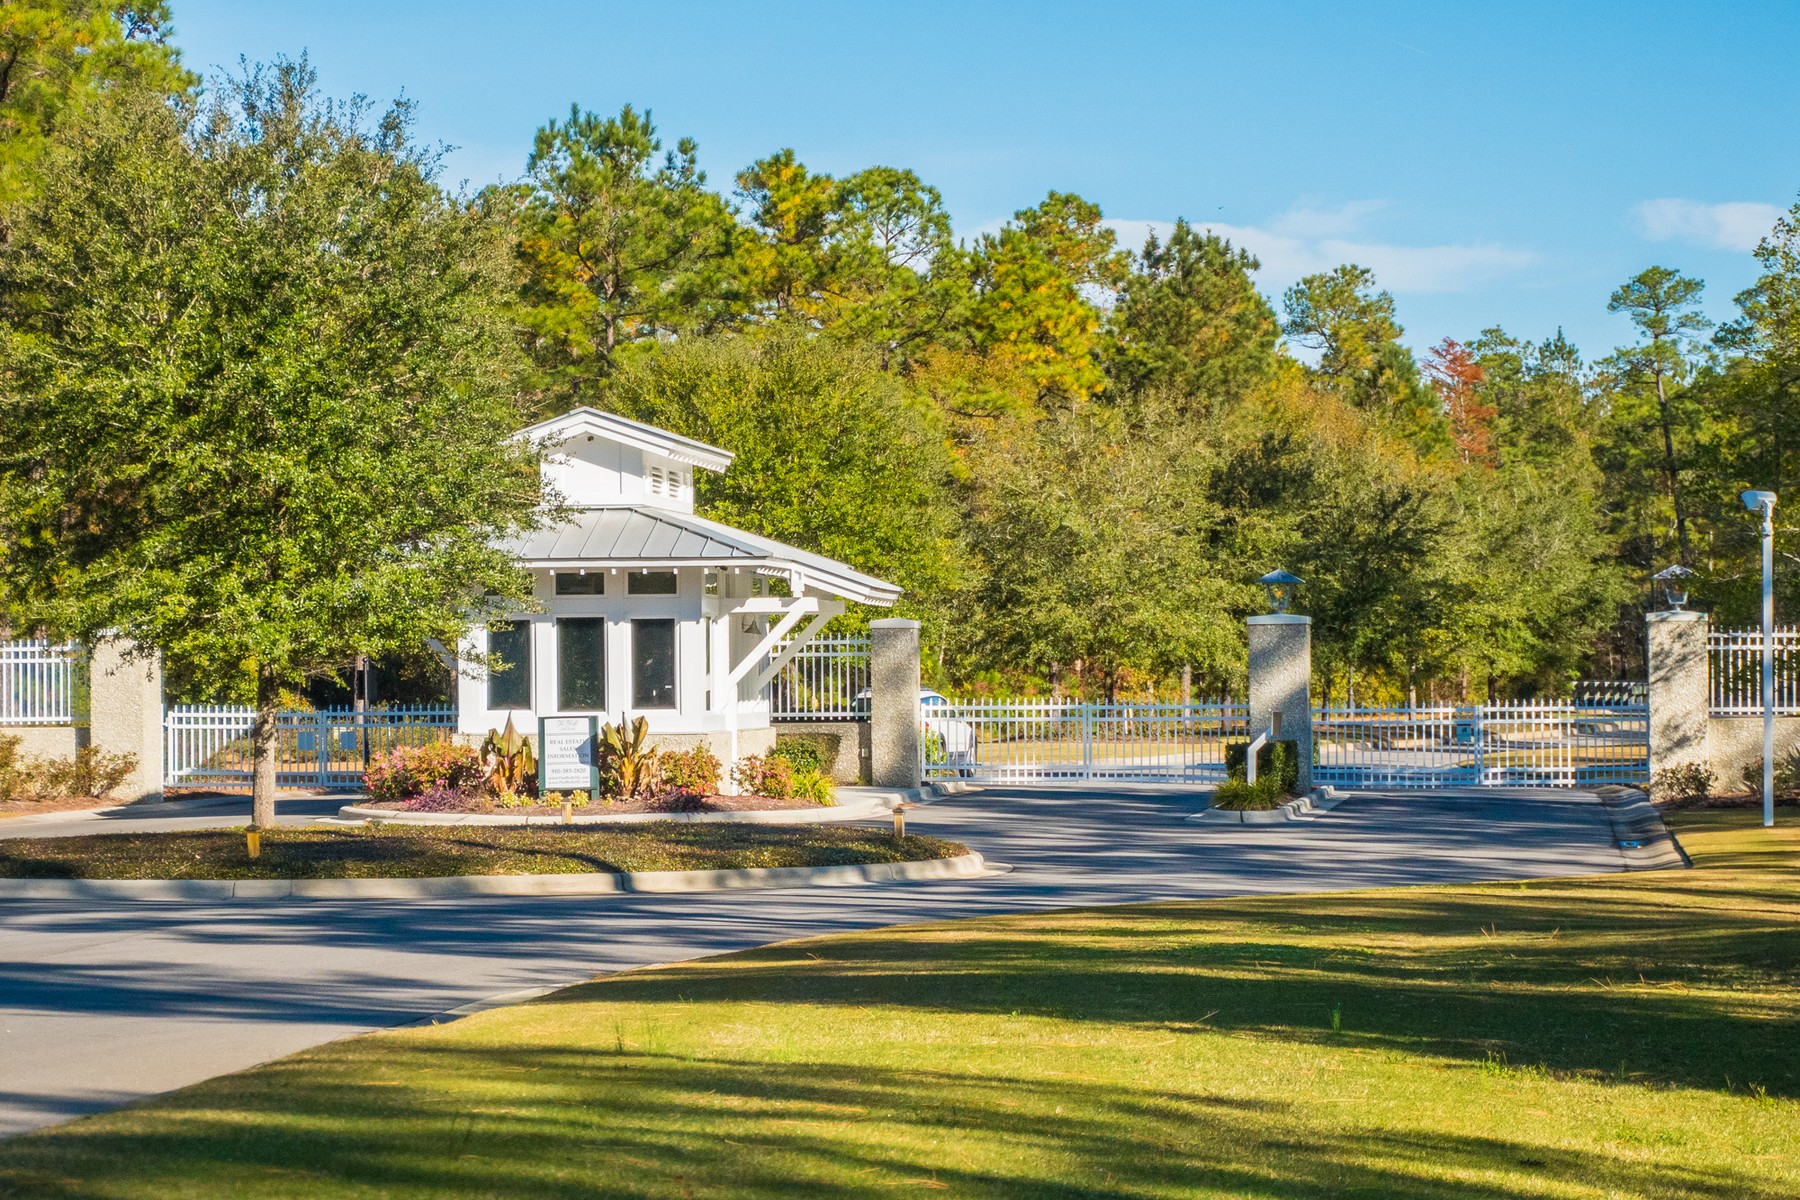 Land for Active at Unique Riverfront Home-site in Gated Community 9269 Buccaneer Court NE Lot 223 Leland, North Carolina 28451 United States